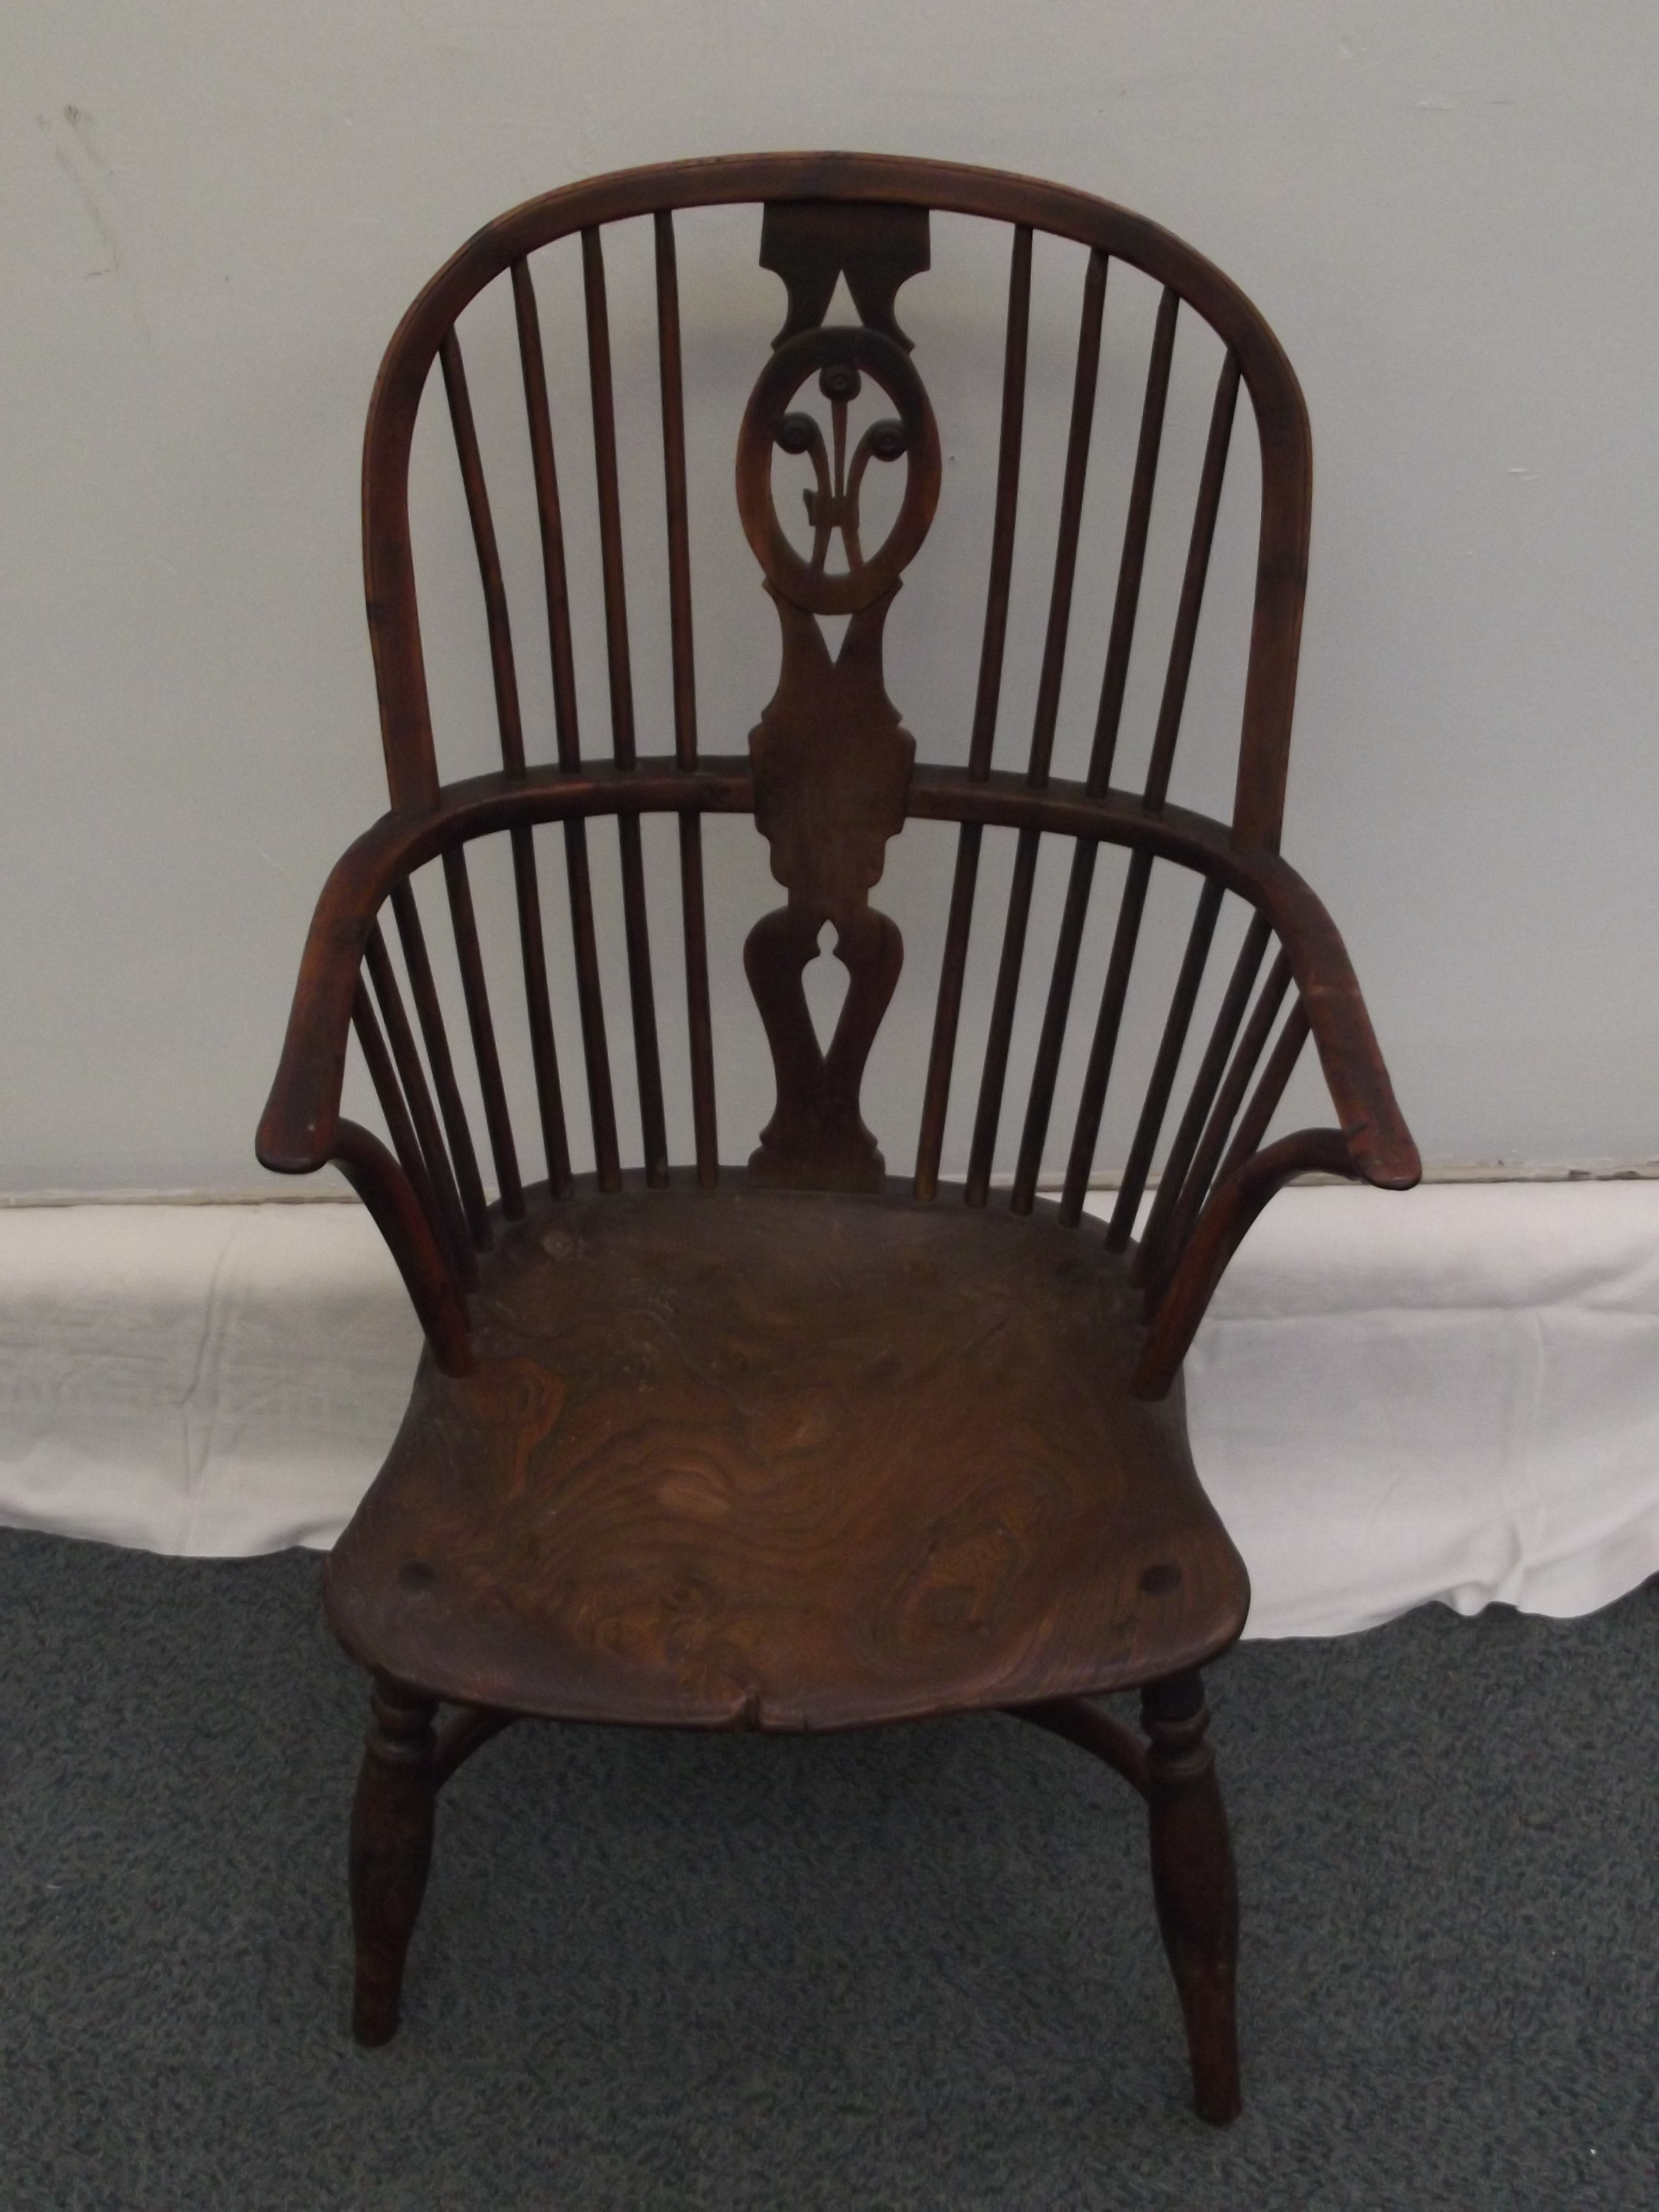 Narrow Armchair C19th Windsor Narrow Armchair In Elm And Yen Wood Some Damages